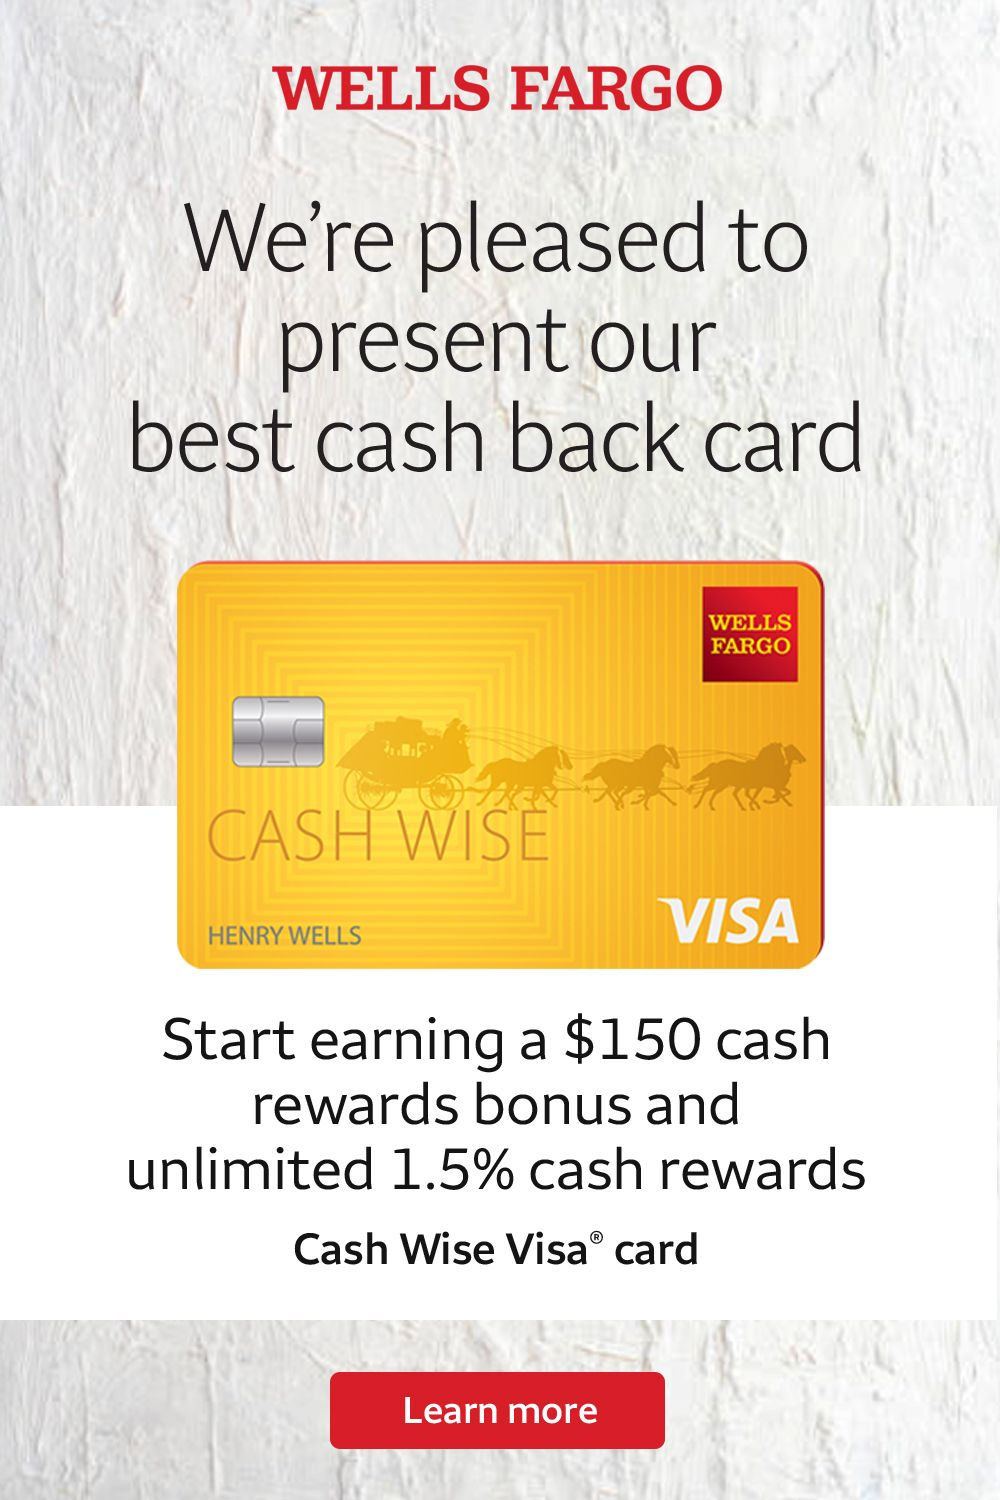 Apply For And Use Your Wells Fargo Cash Wise Visa Card On Everything From Wedding Planning New Babies To Online Purchases Earn C In 2020 Wells Fargo Visa Card Fargo